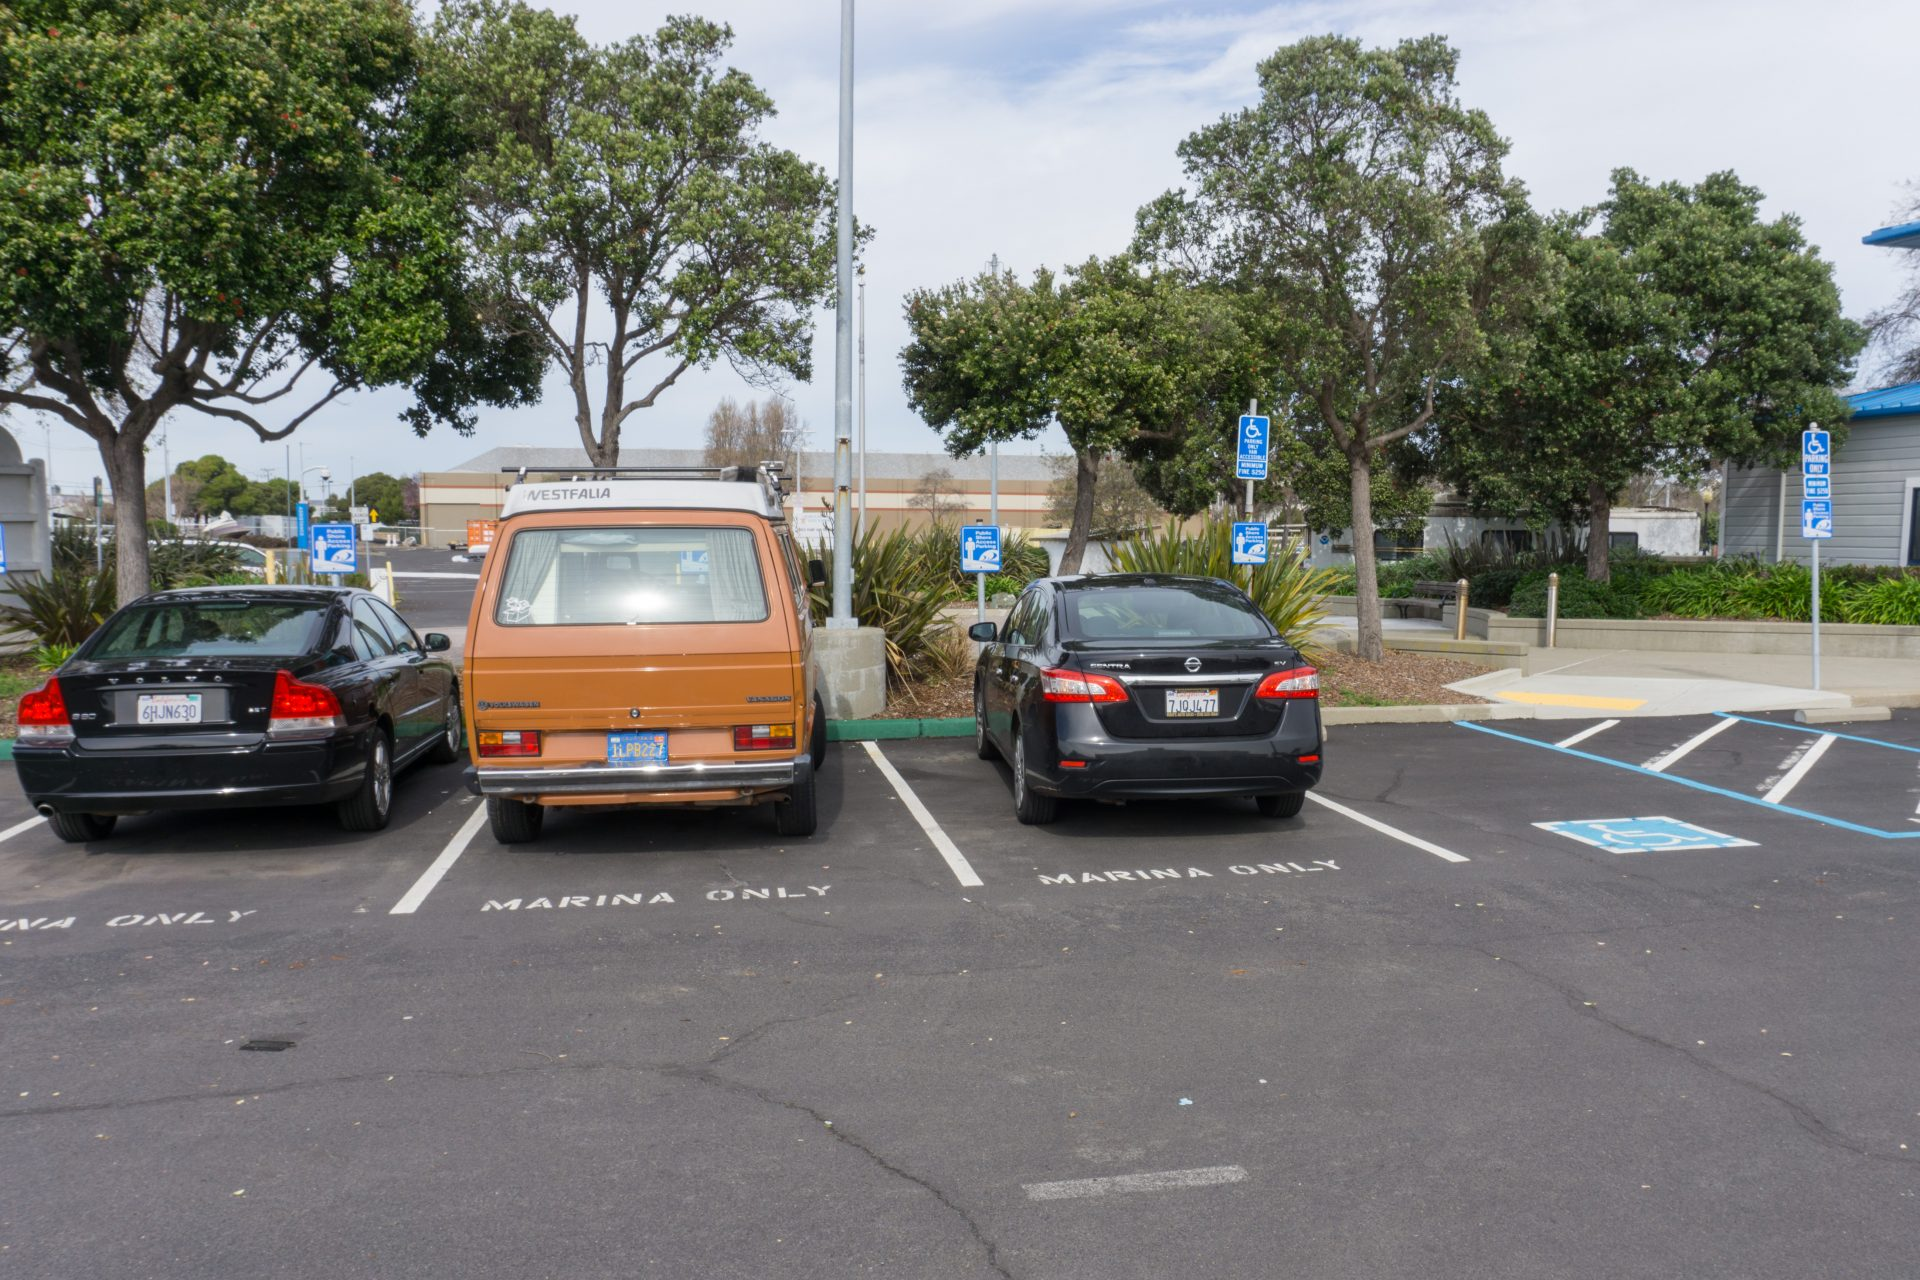 PArking lot with three cars and two open accessible spots